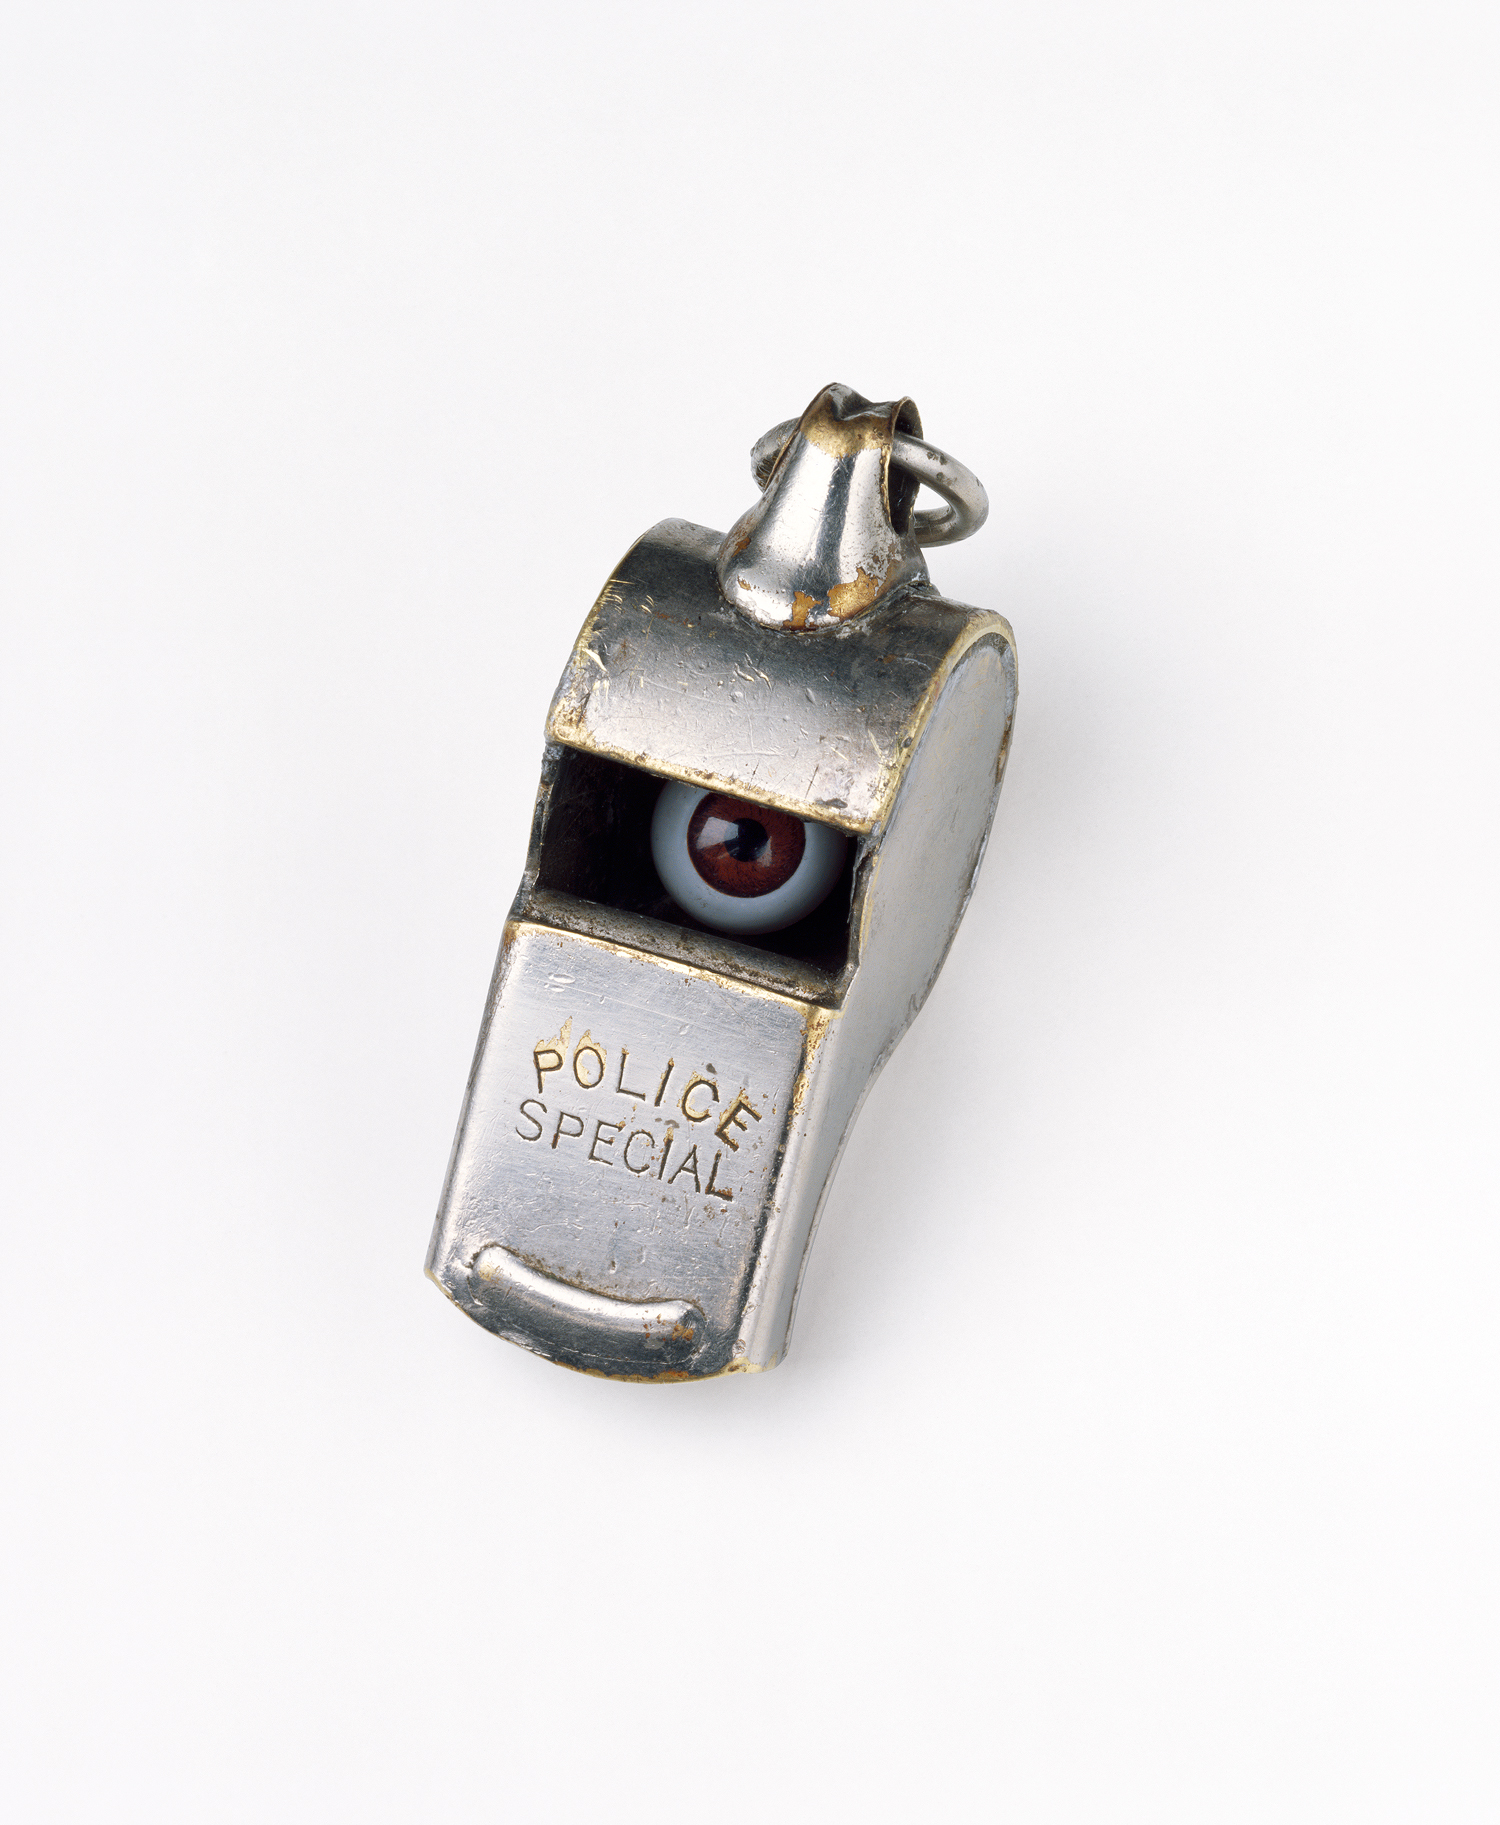 Police whistle with eyes